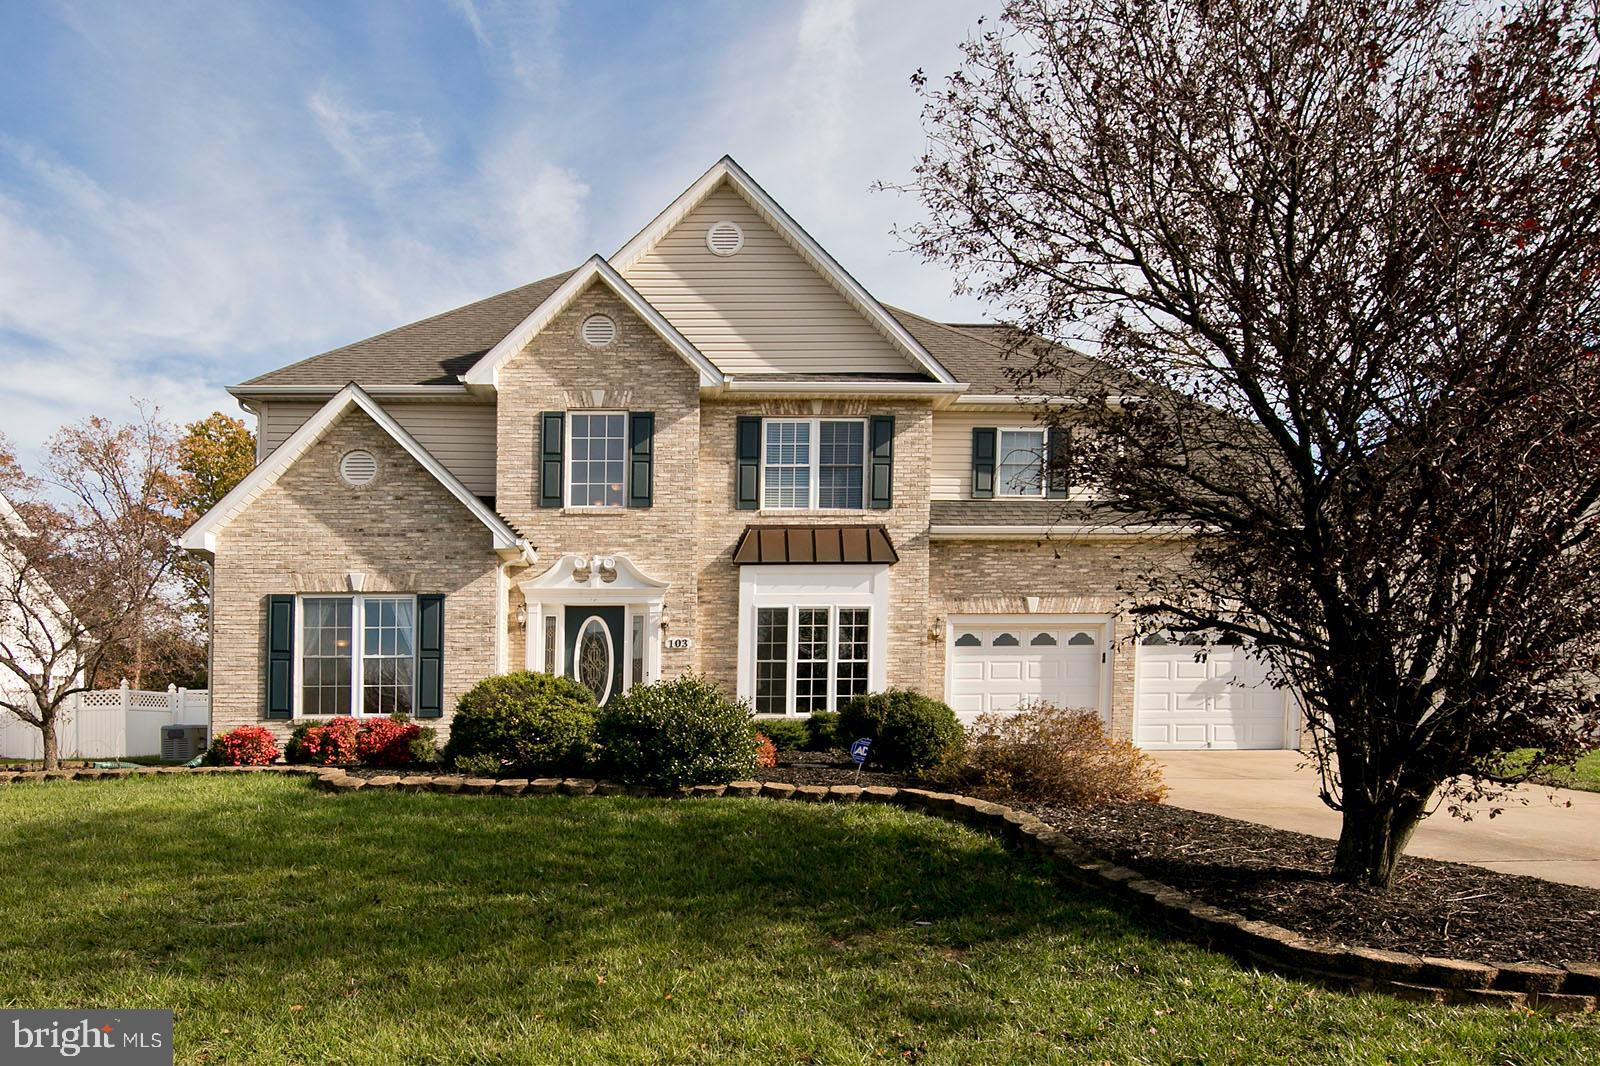 Welcome to this spacious 2 story Foyer & family room home with newly finished hardwood floors located in the inviting Camp at Mosby Station subdivision. Three levels of over 3000+ sq ft including a family room conveying a cozy gas fireplace and plenty of windows for natural lighting. Separate dining room with hardwood floors complimented by chair railing. Gourmet kitchen includes upgraded Dupont quartz countertops with a built-in microwave and oven. Large master suite is newly carpeted with tiled master bathroom. New carpets in all bedrooms and recently painted main floor and upstairs hallway. Partially finished basement to extend your living space. Possibly theater room or rec room? Surrounding additions include trex deck, fence, shed and patio.  Community amenities include wooded and cleared common areas, sidewalks, and a surrounding bike path for recreation. Sherando Park is just around the corner!  Whole house generator. Kids play set in the  backyard included. Washer/dryer not included.